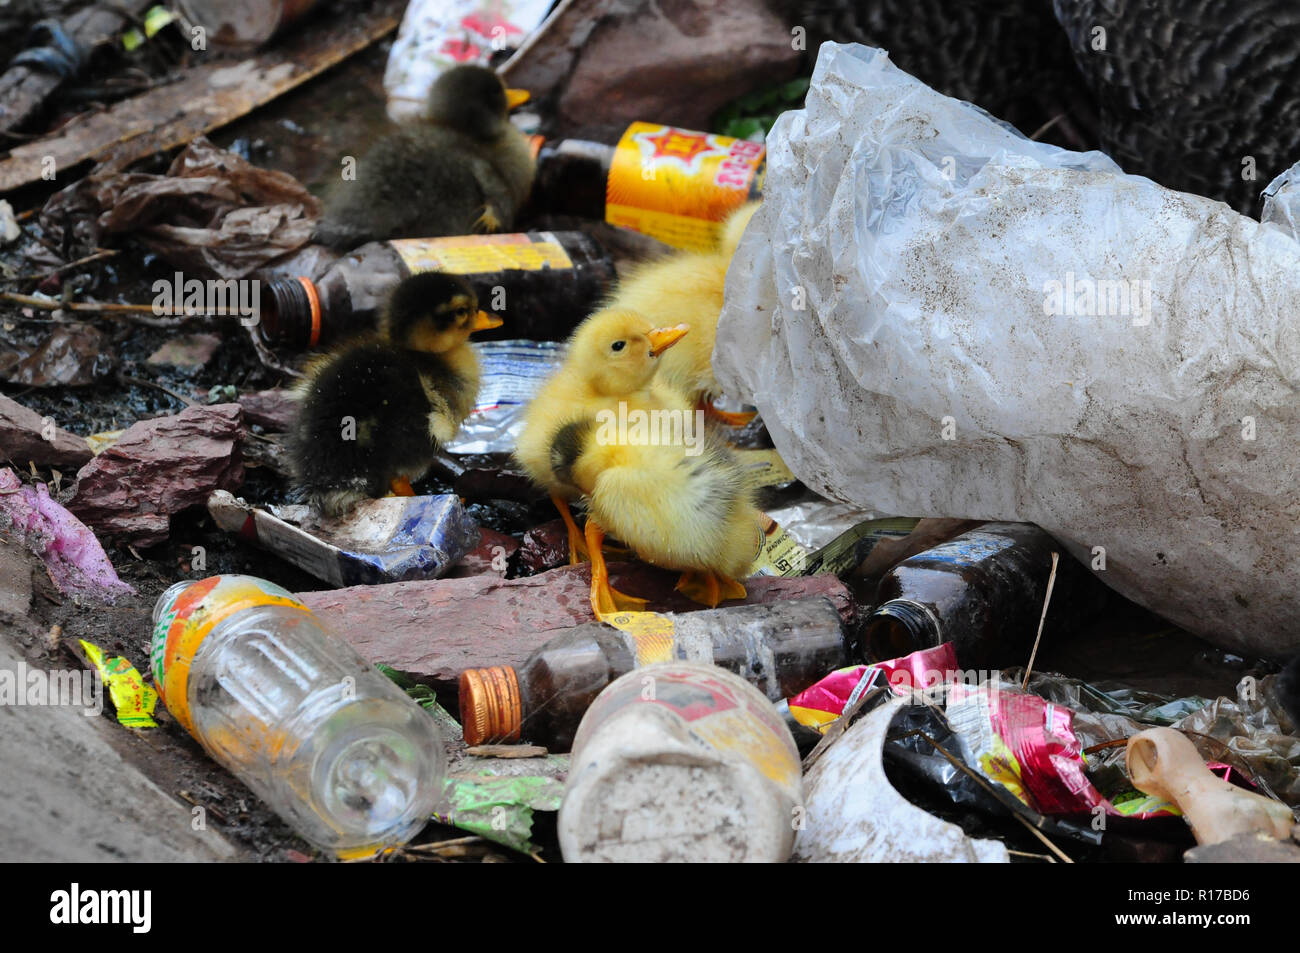 Ducklings in the trash near the village Vang Vieng, Laos. - Stock Image